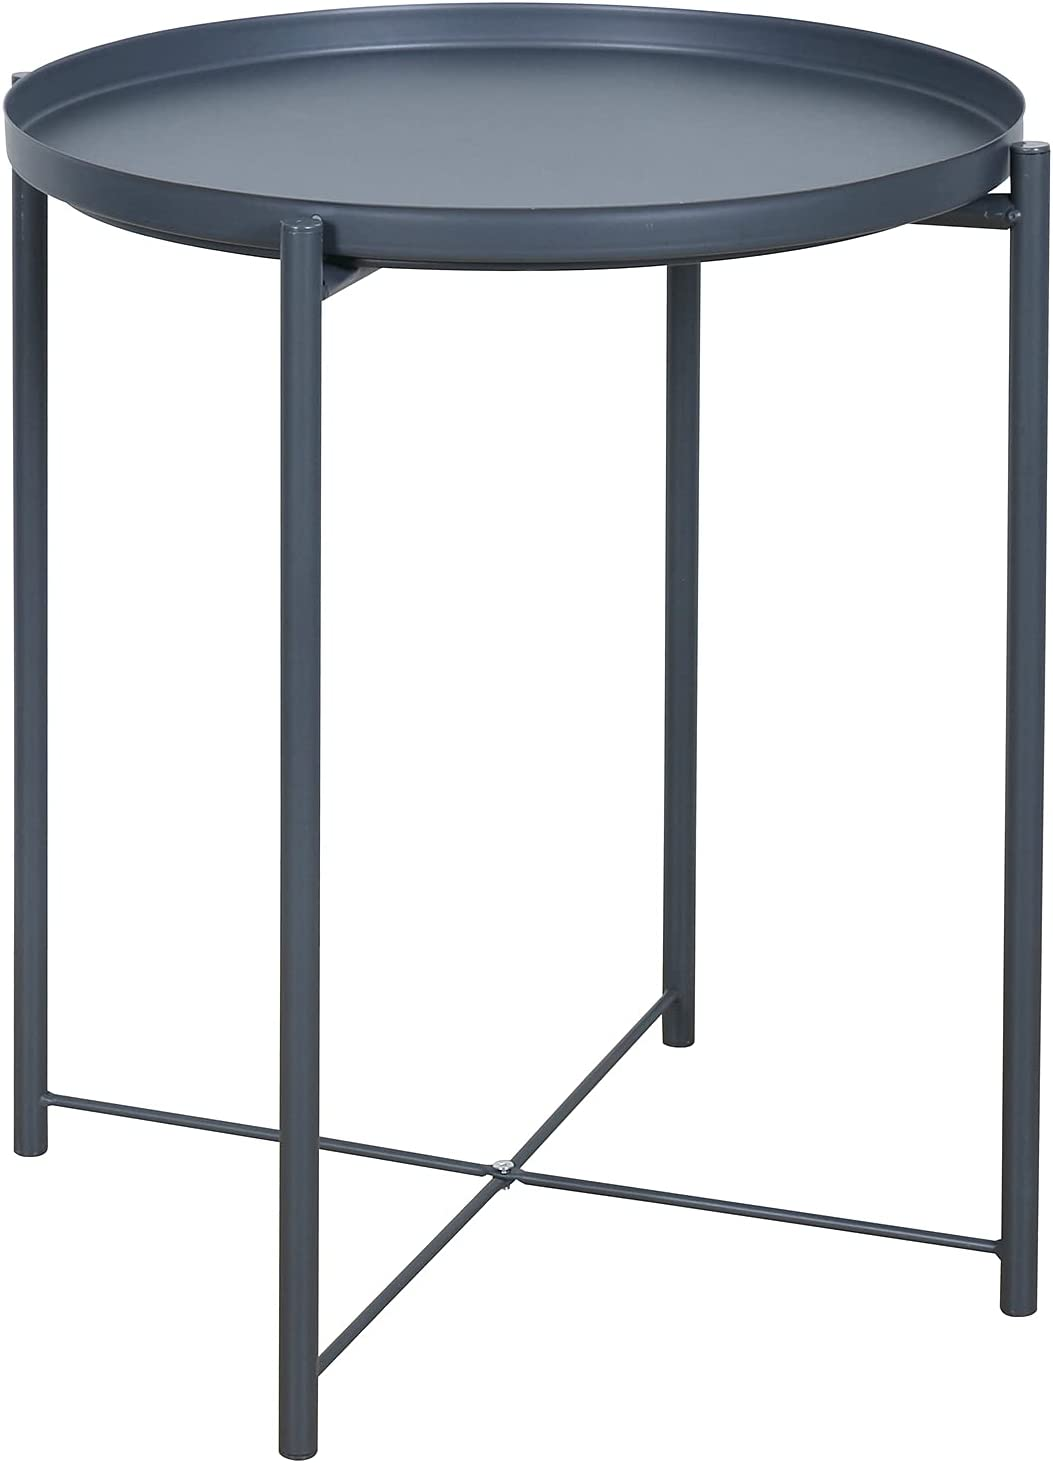 Rainbow Sophia Modern Metal Frame with Side Roun End At Ranking TOP16 the price of surprise Table